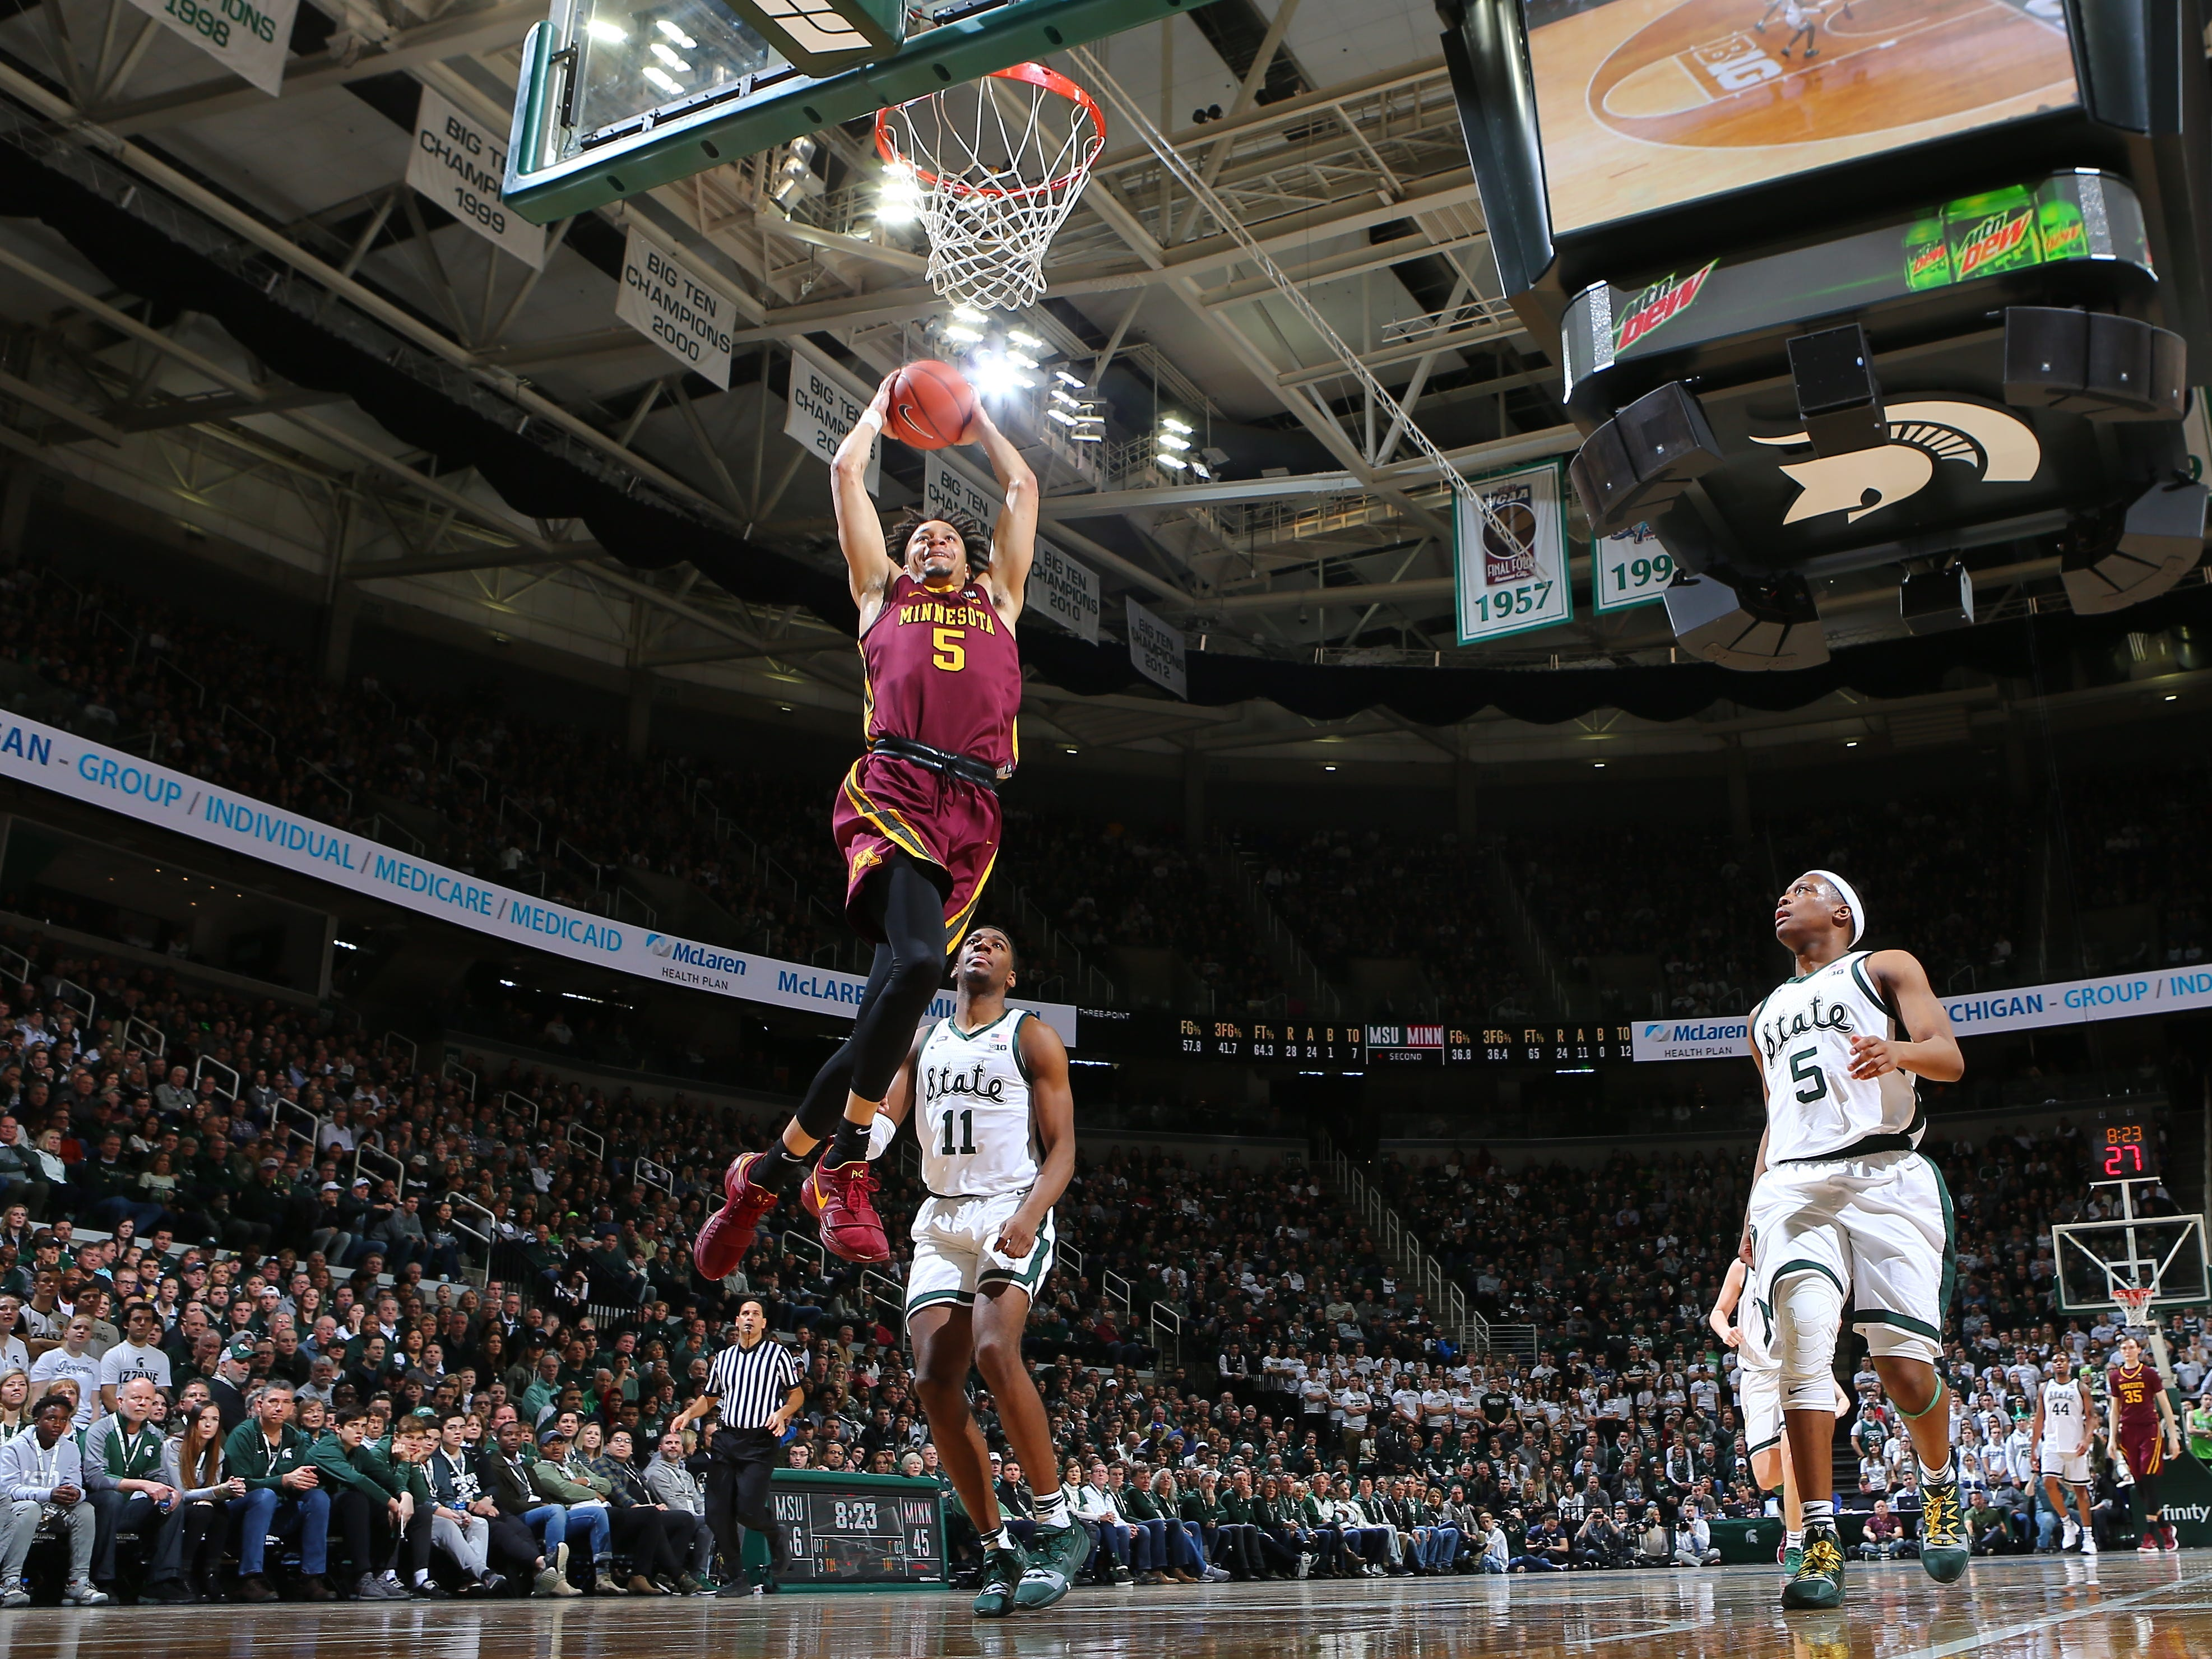 Amir Coffey of the Minnesota Golden Gophers dunks the ball in the second half.